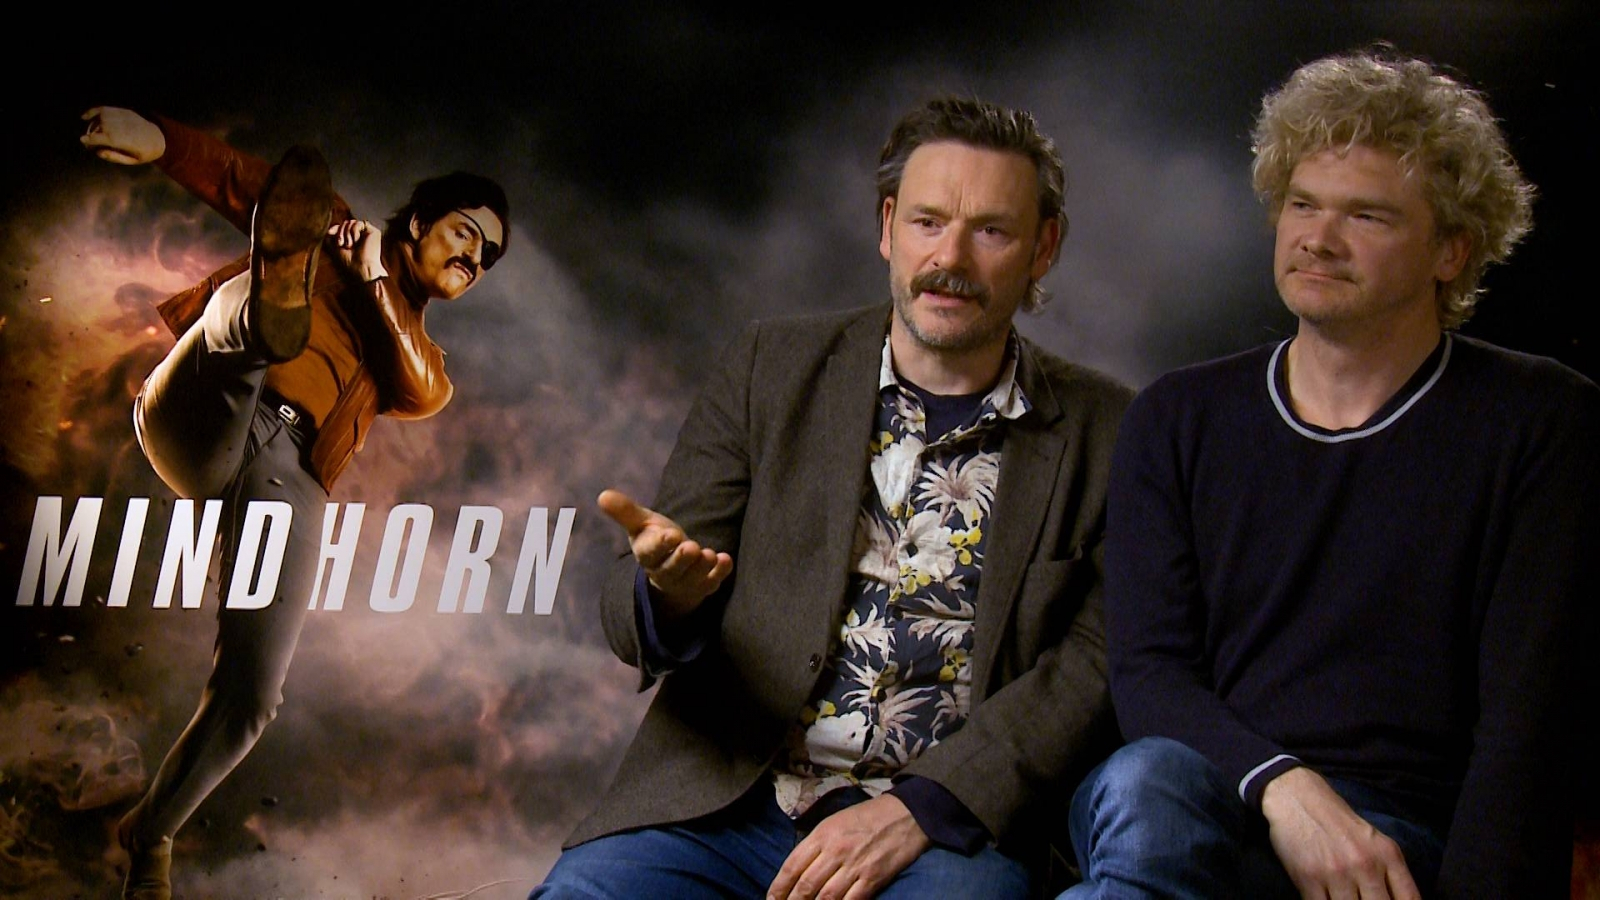 mindhorn-exclusive-interview-with-julian-barratt-simon-farnaby